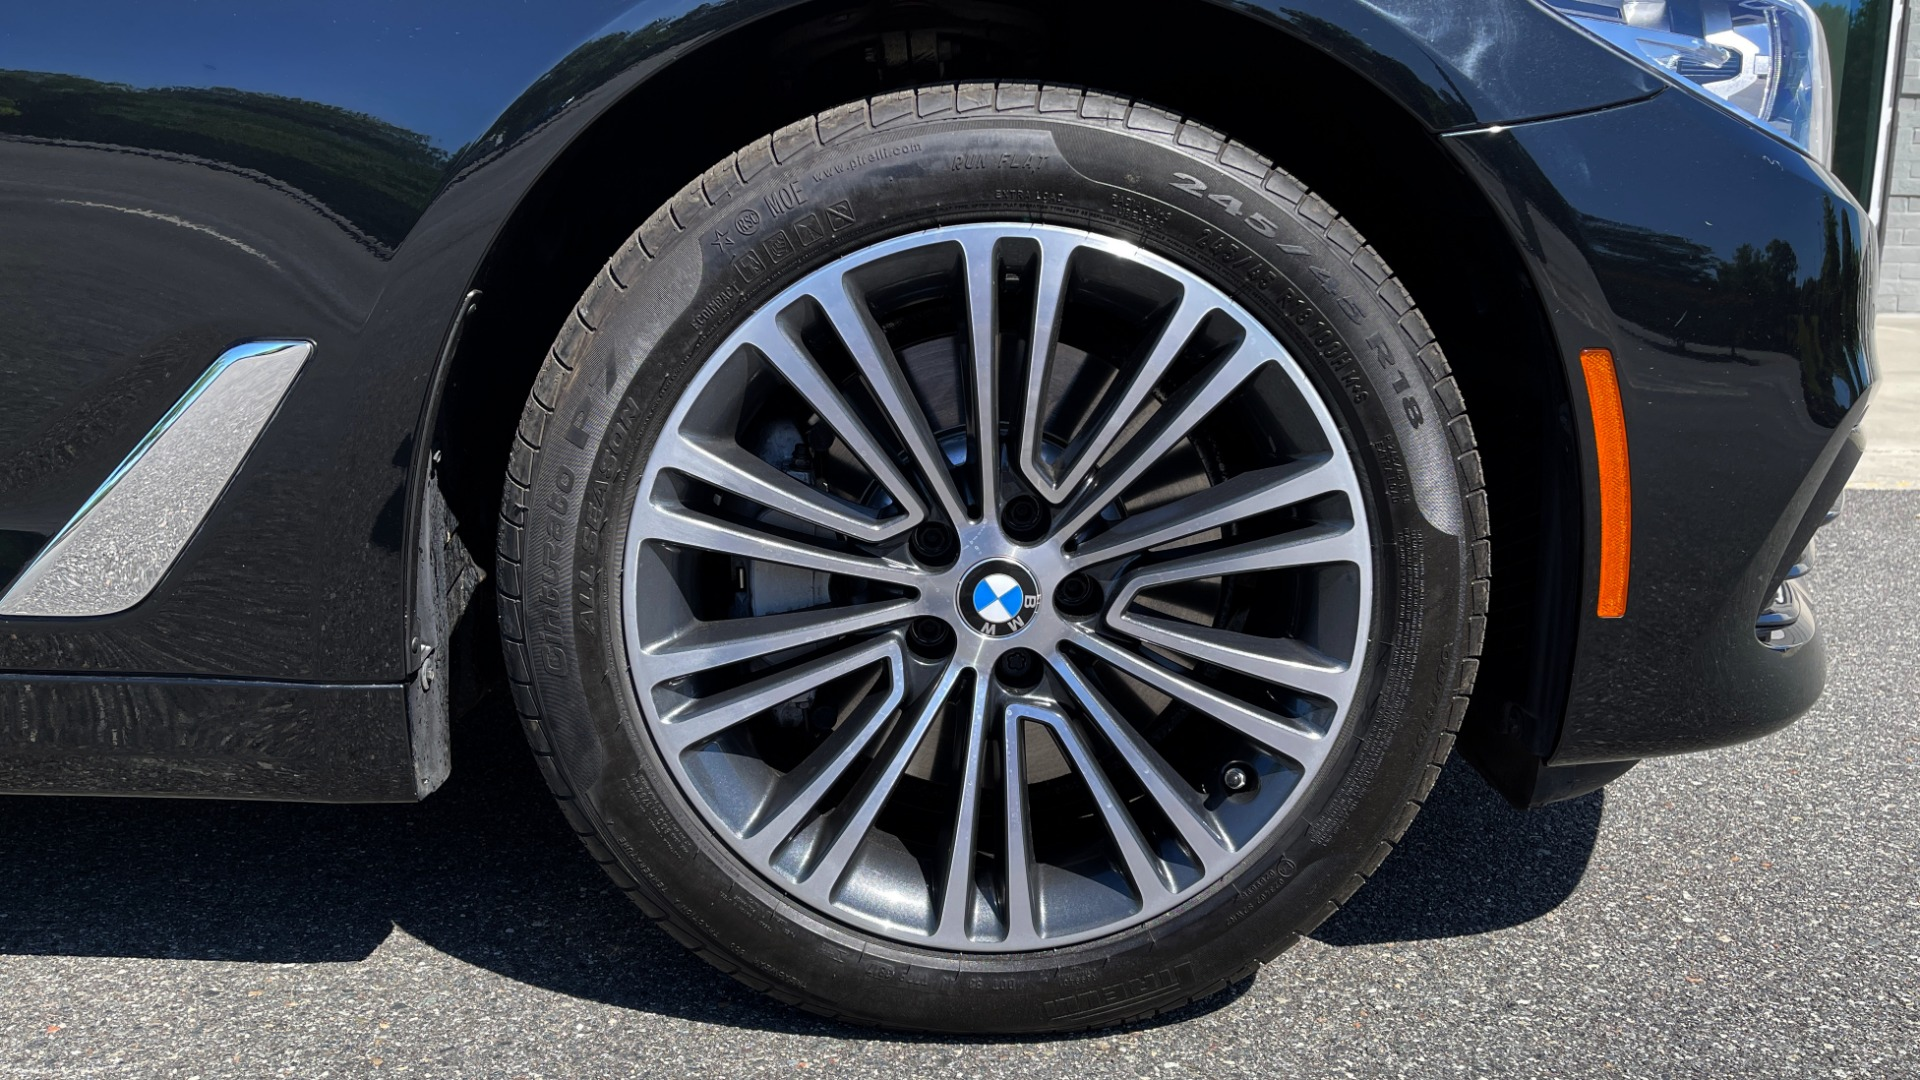 Used 2018 BMW 5 SERIES 540I XDRIVE PREMIUM / NAV / PARK ASST / WIRELESS CHARGING H/K SND for sale $38,395 at Formula Imports in Charlotte NC 28227 87